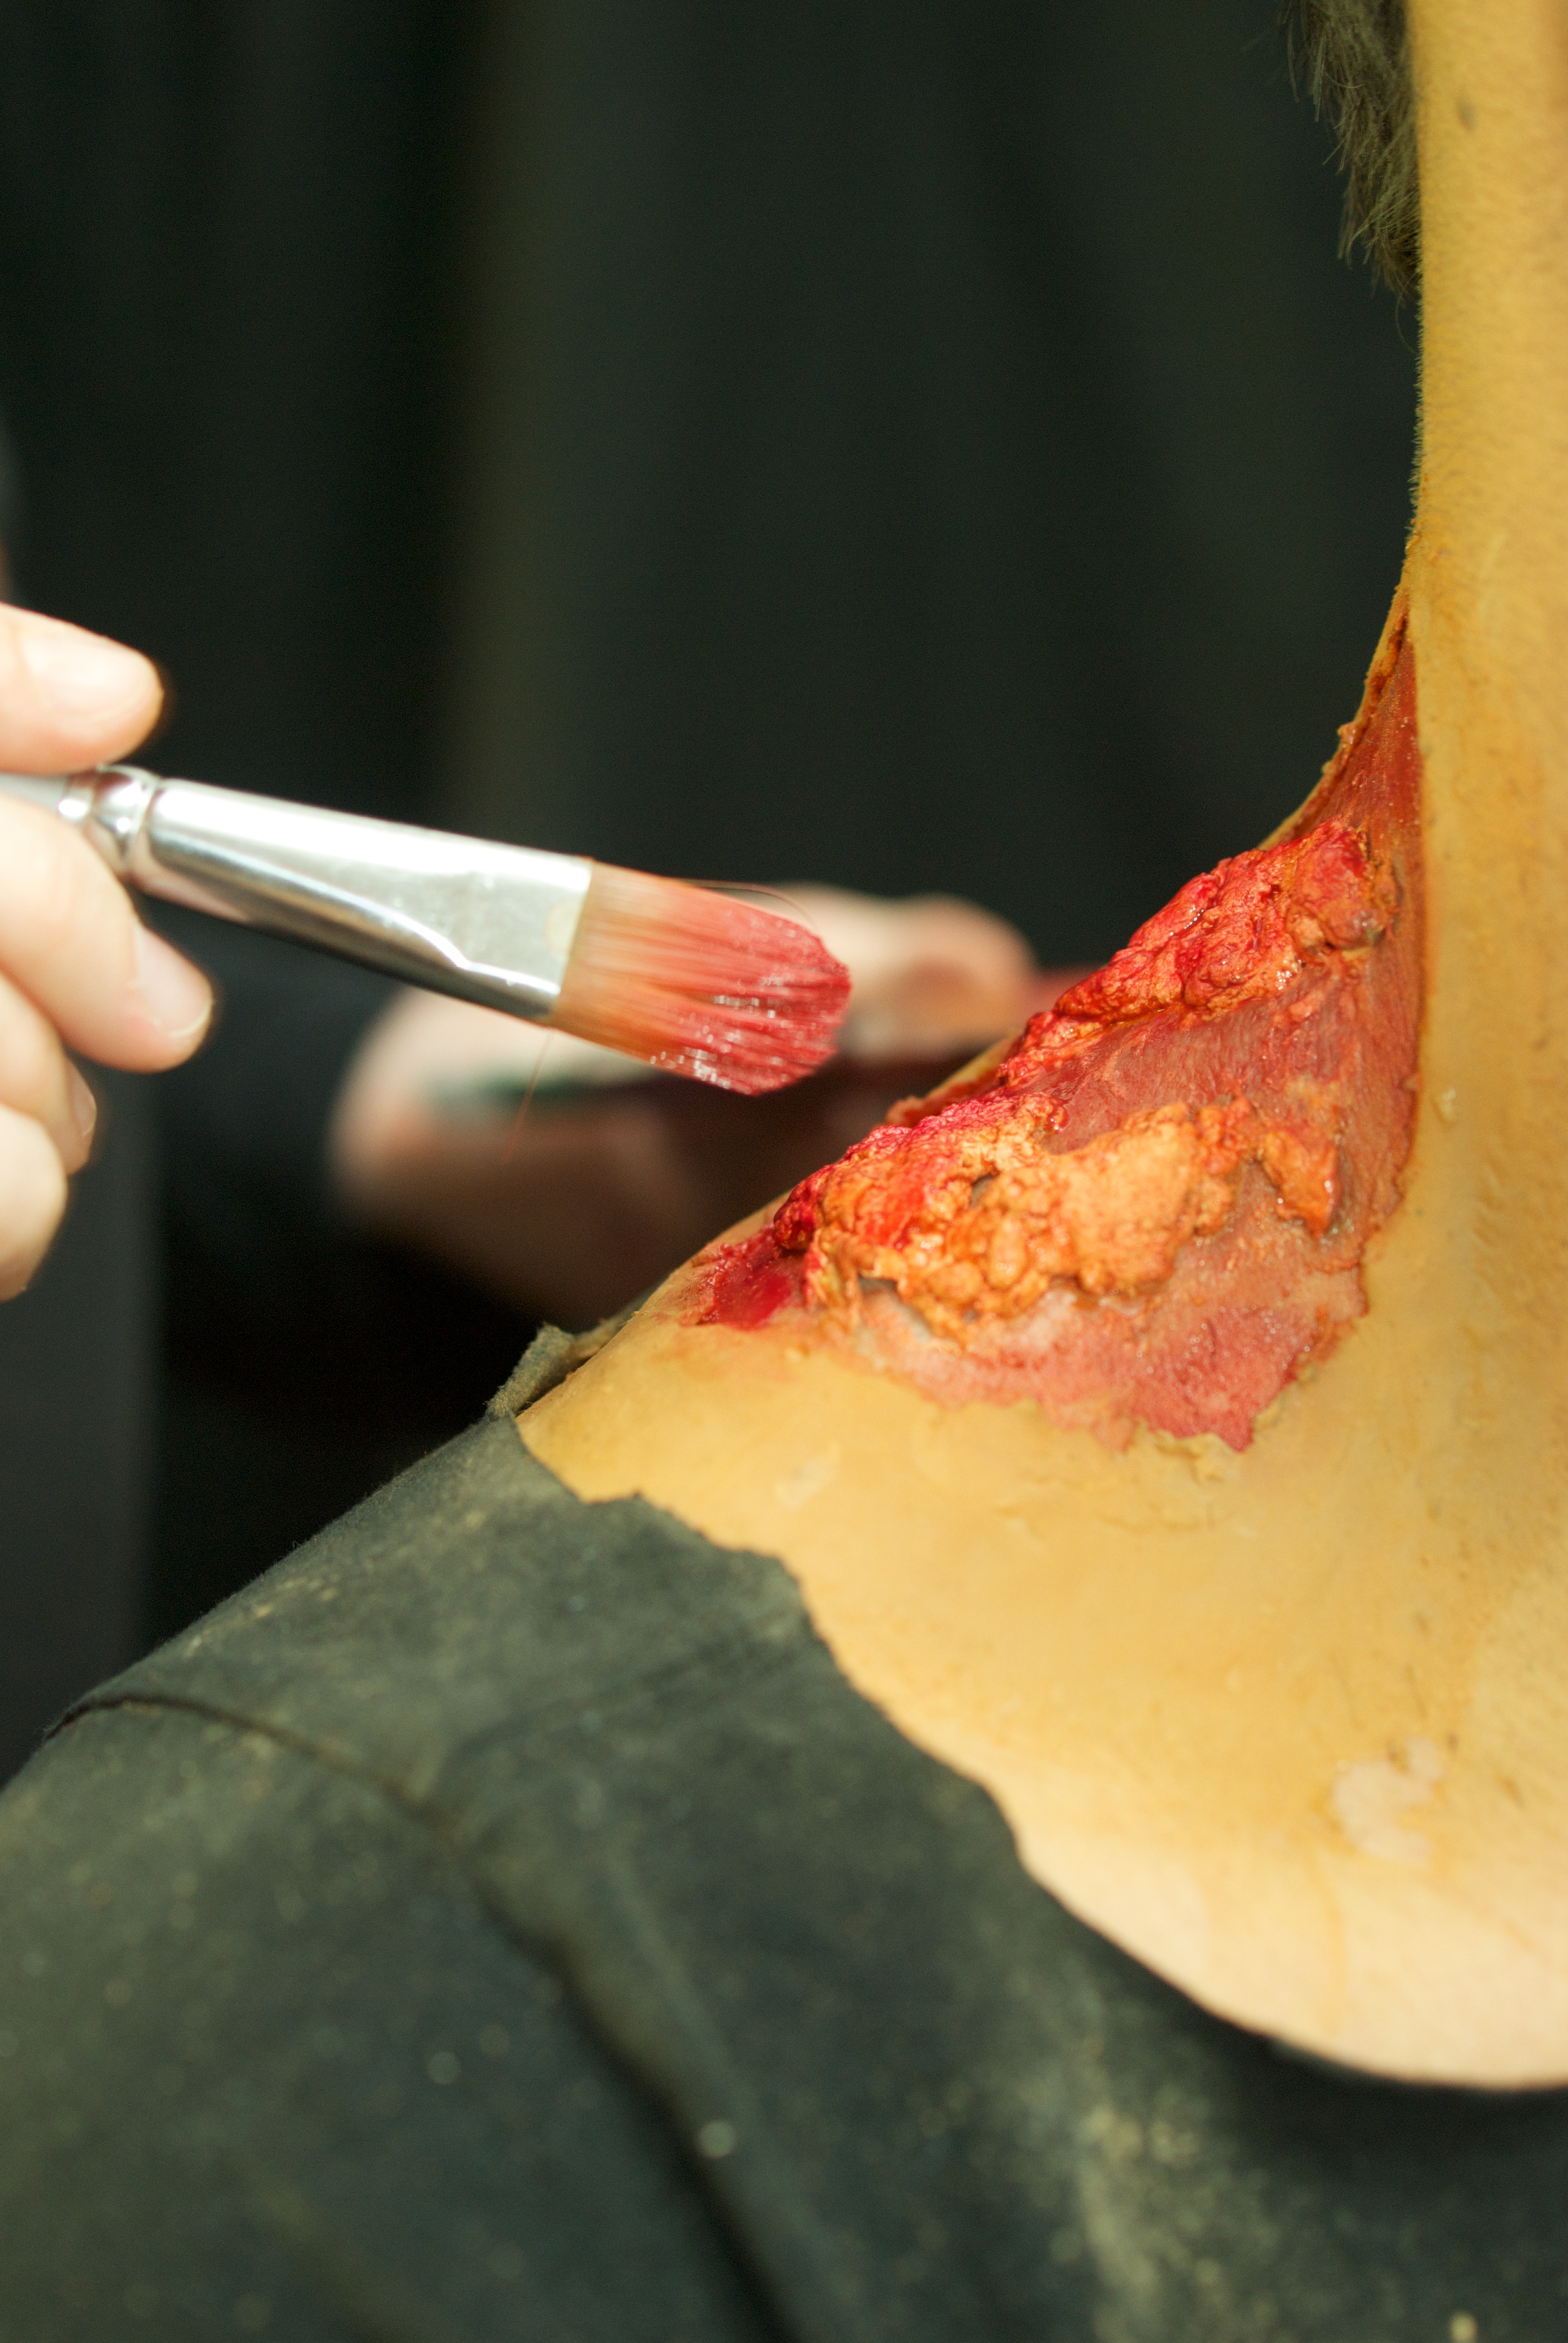 Picture of Add Red Base Coat to Sores, Bite Wound